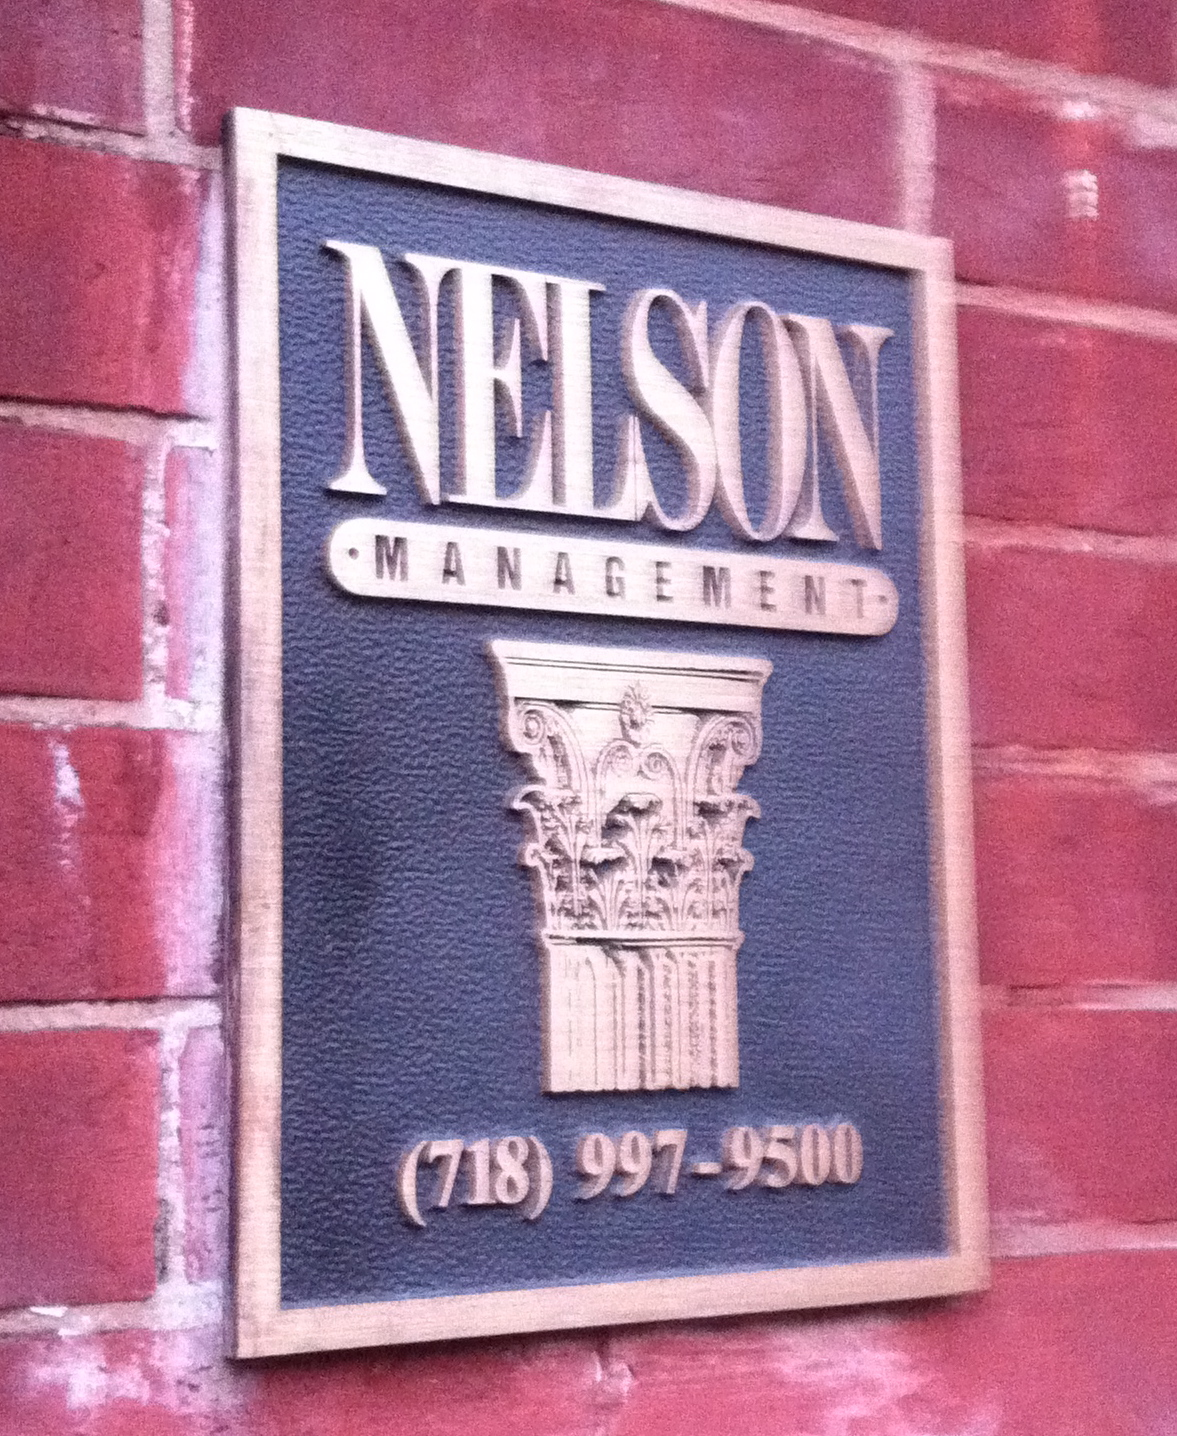 A Management Company Plaque On Building